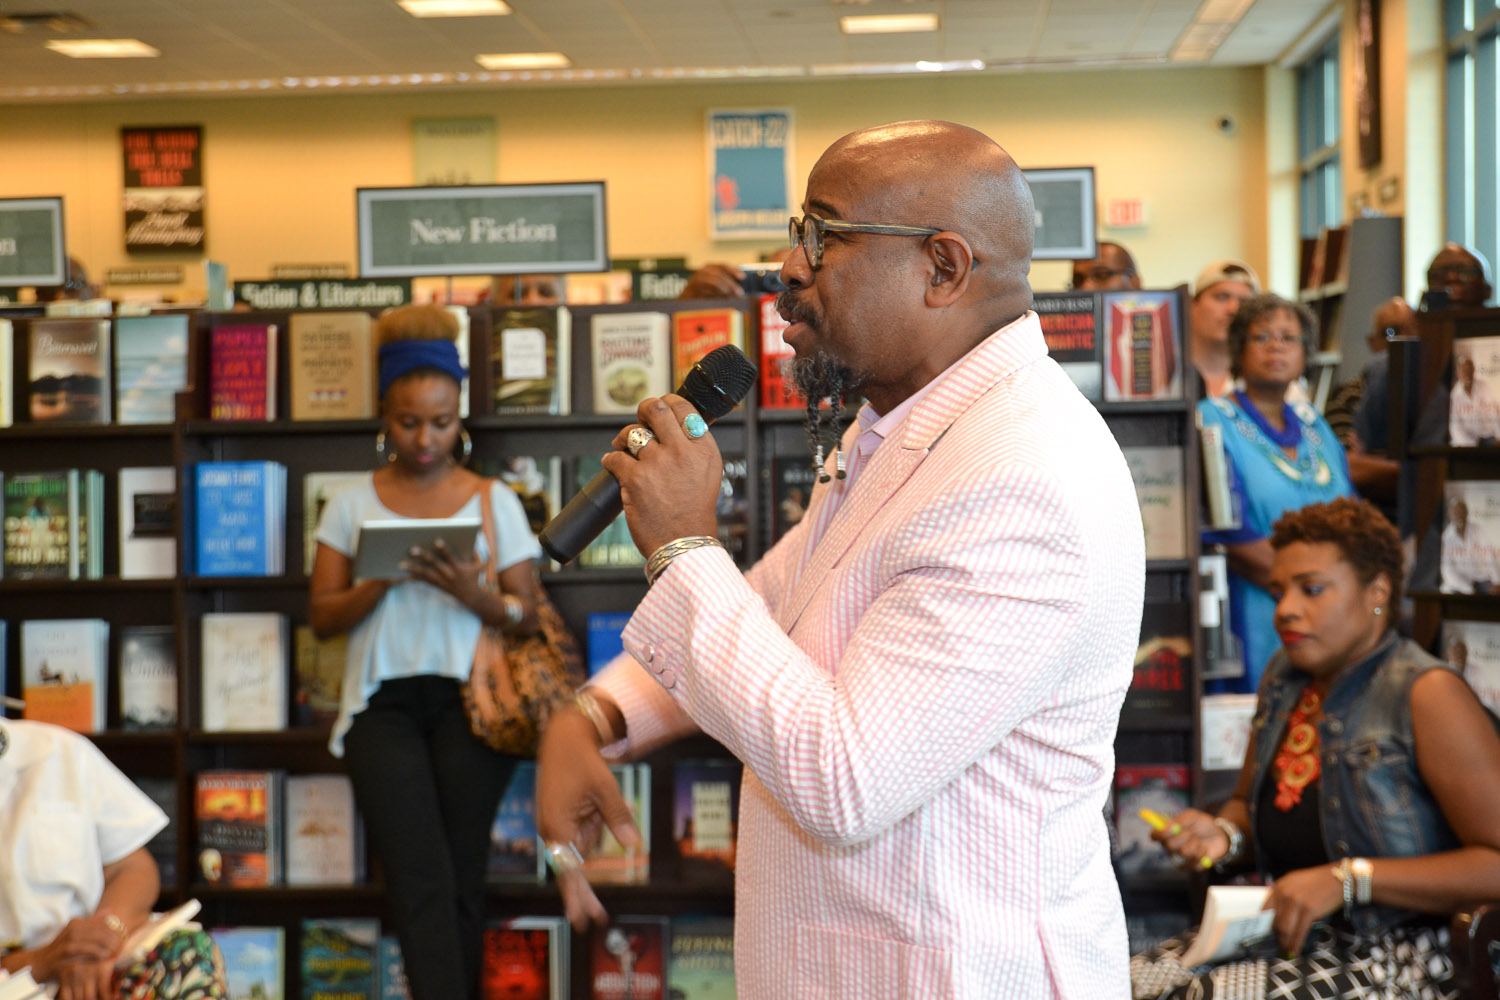 Paster Rudy book signing -0101.jpg